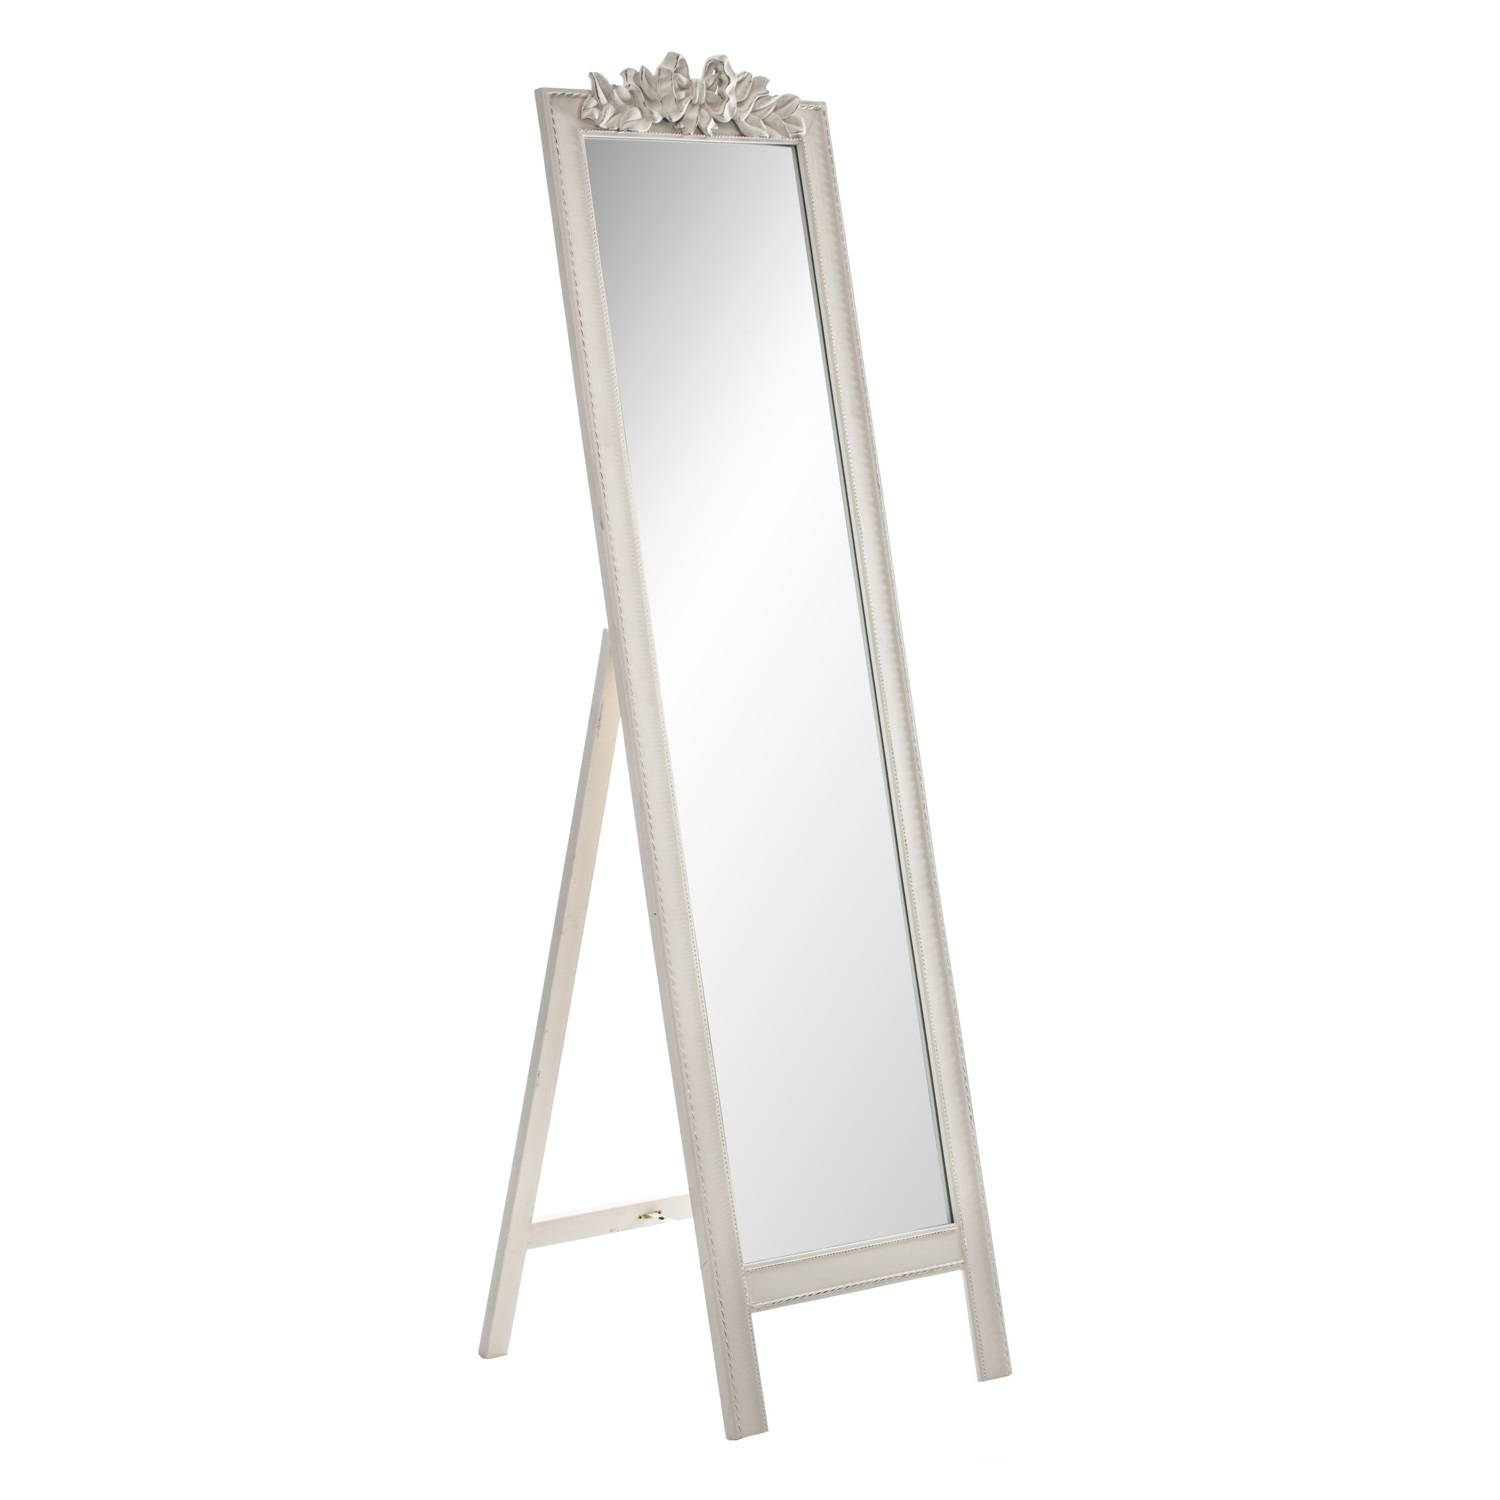 Homeware: Oval Full Length Standing Mirror | Large Floor Mirrors with Free Standing Oval Mirrors (Image 22 of 25)